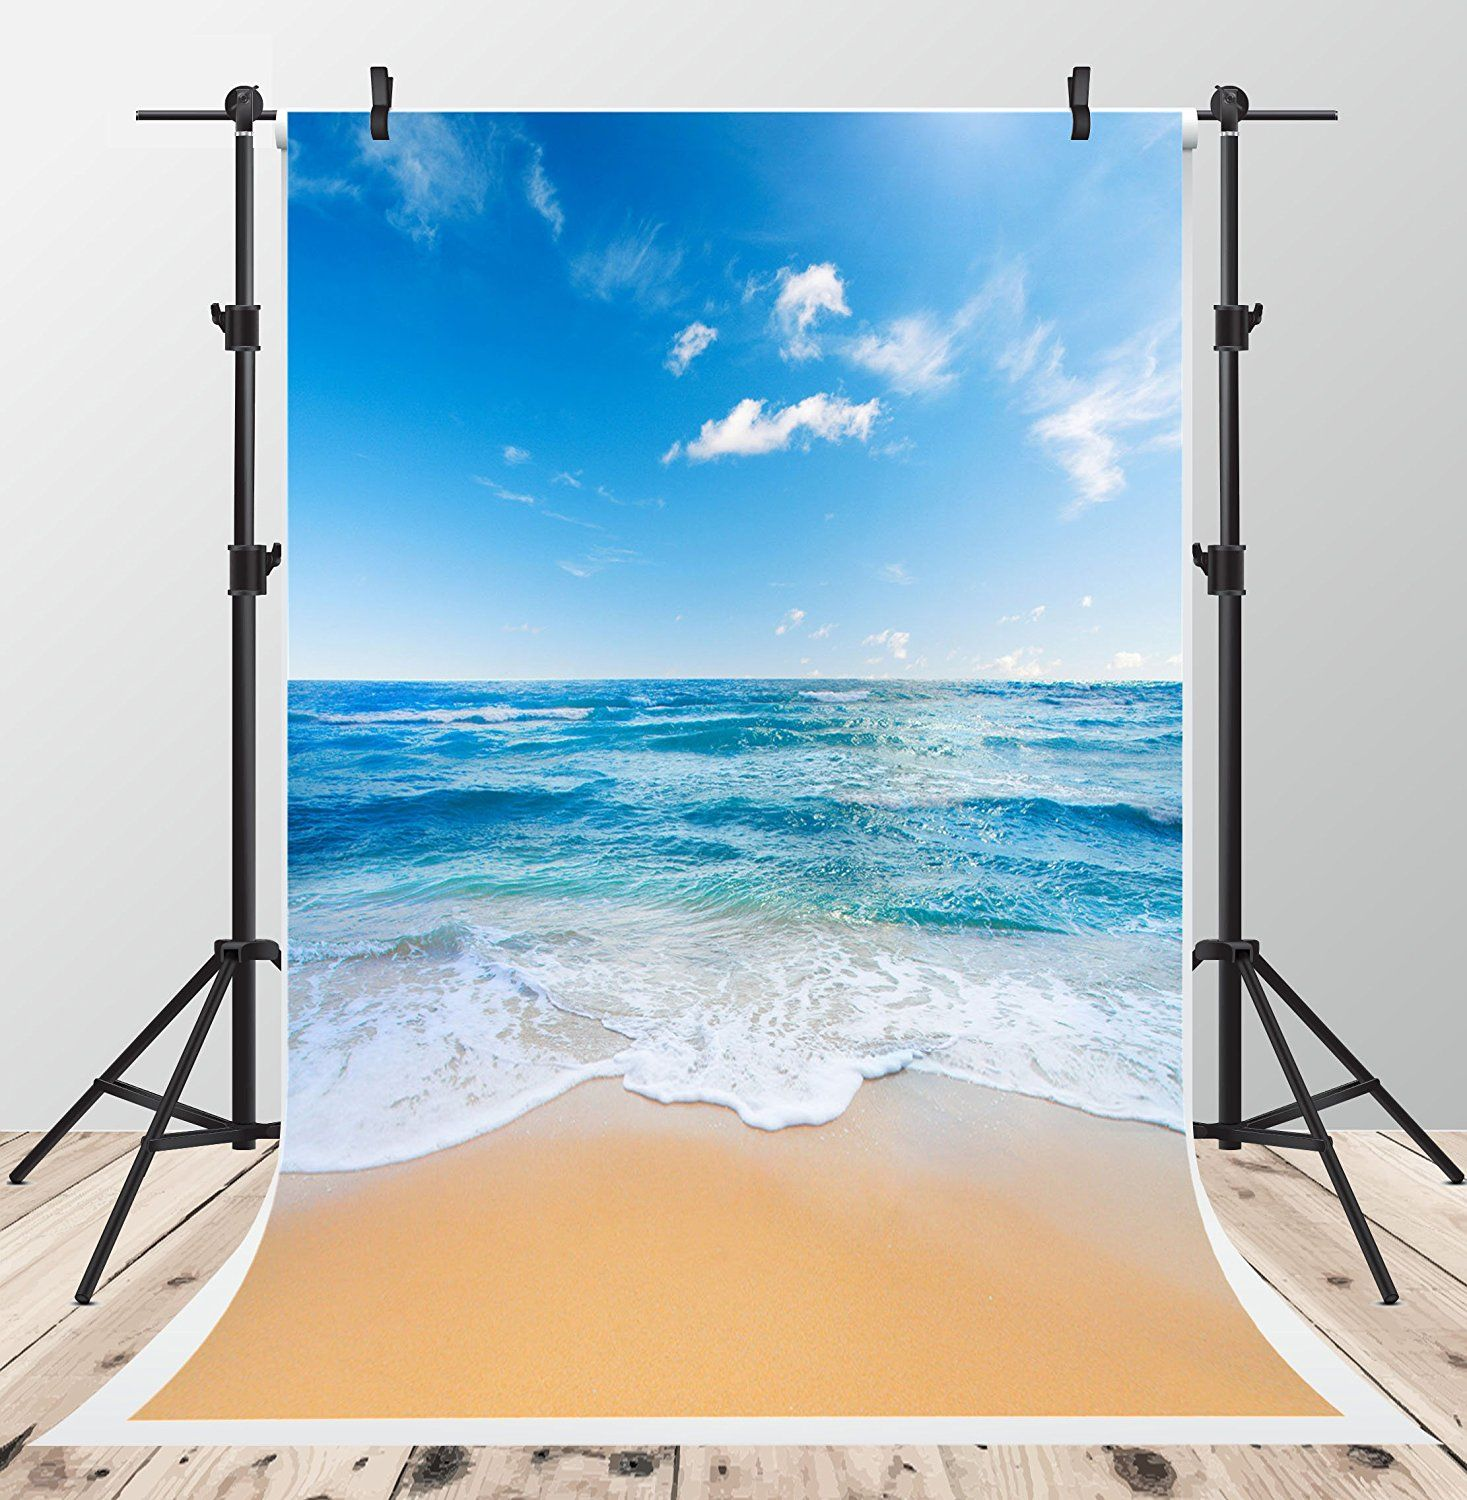 Beach Summer Backdrops Seaside Photography Background Ocean Green Tree Backdrop Wedding Birthday Party Children Lovers Adults Backdrop Props 7x5ft Vinyl E00T10285G